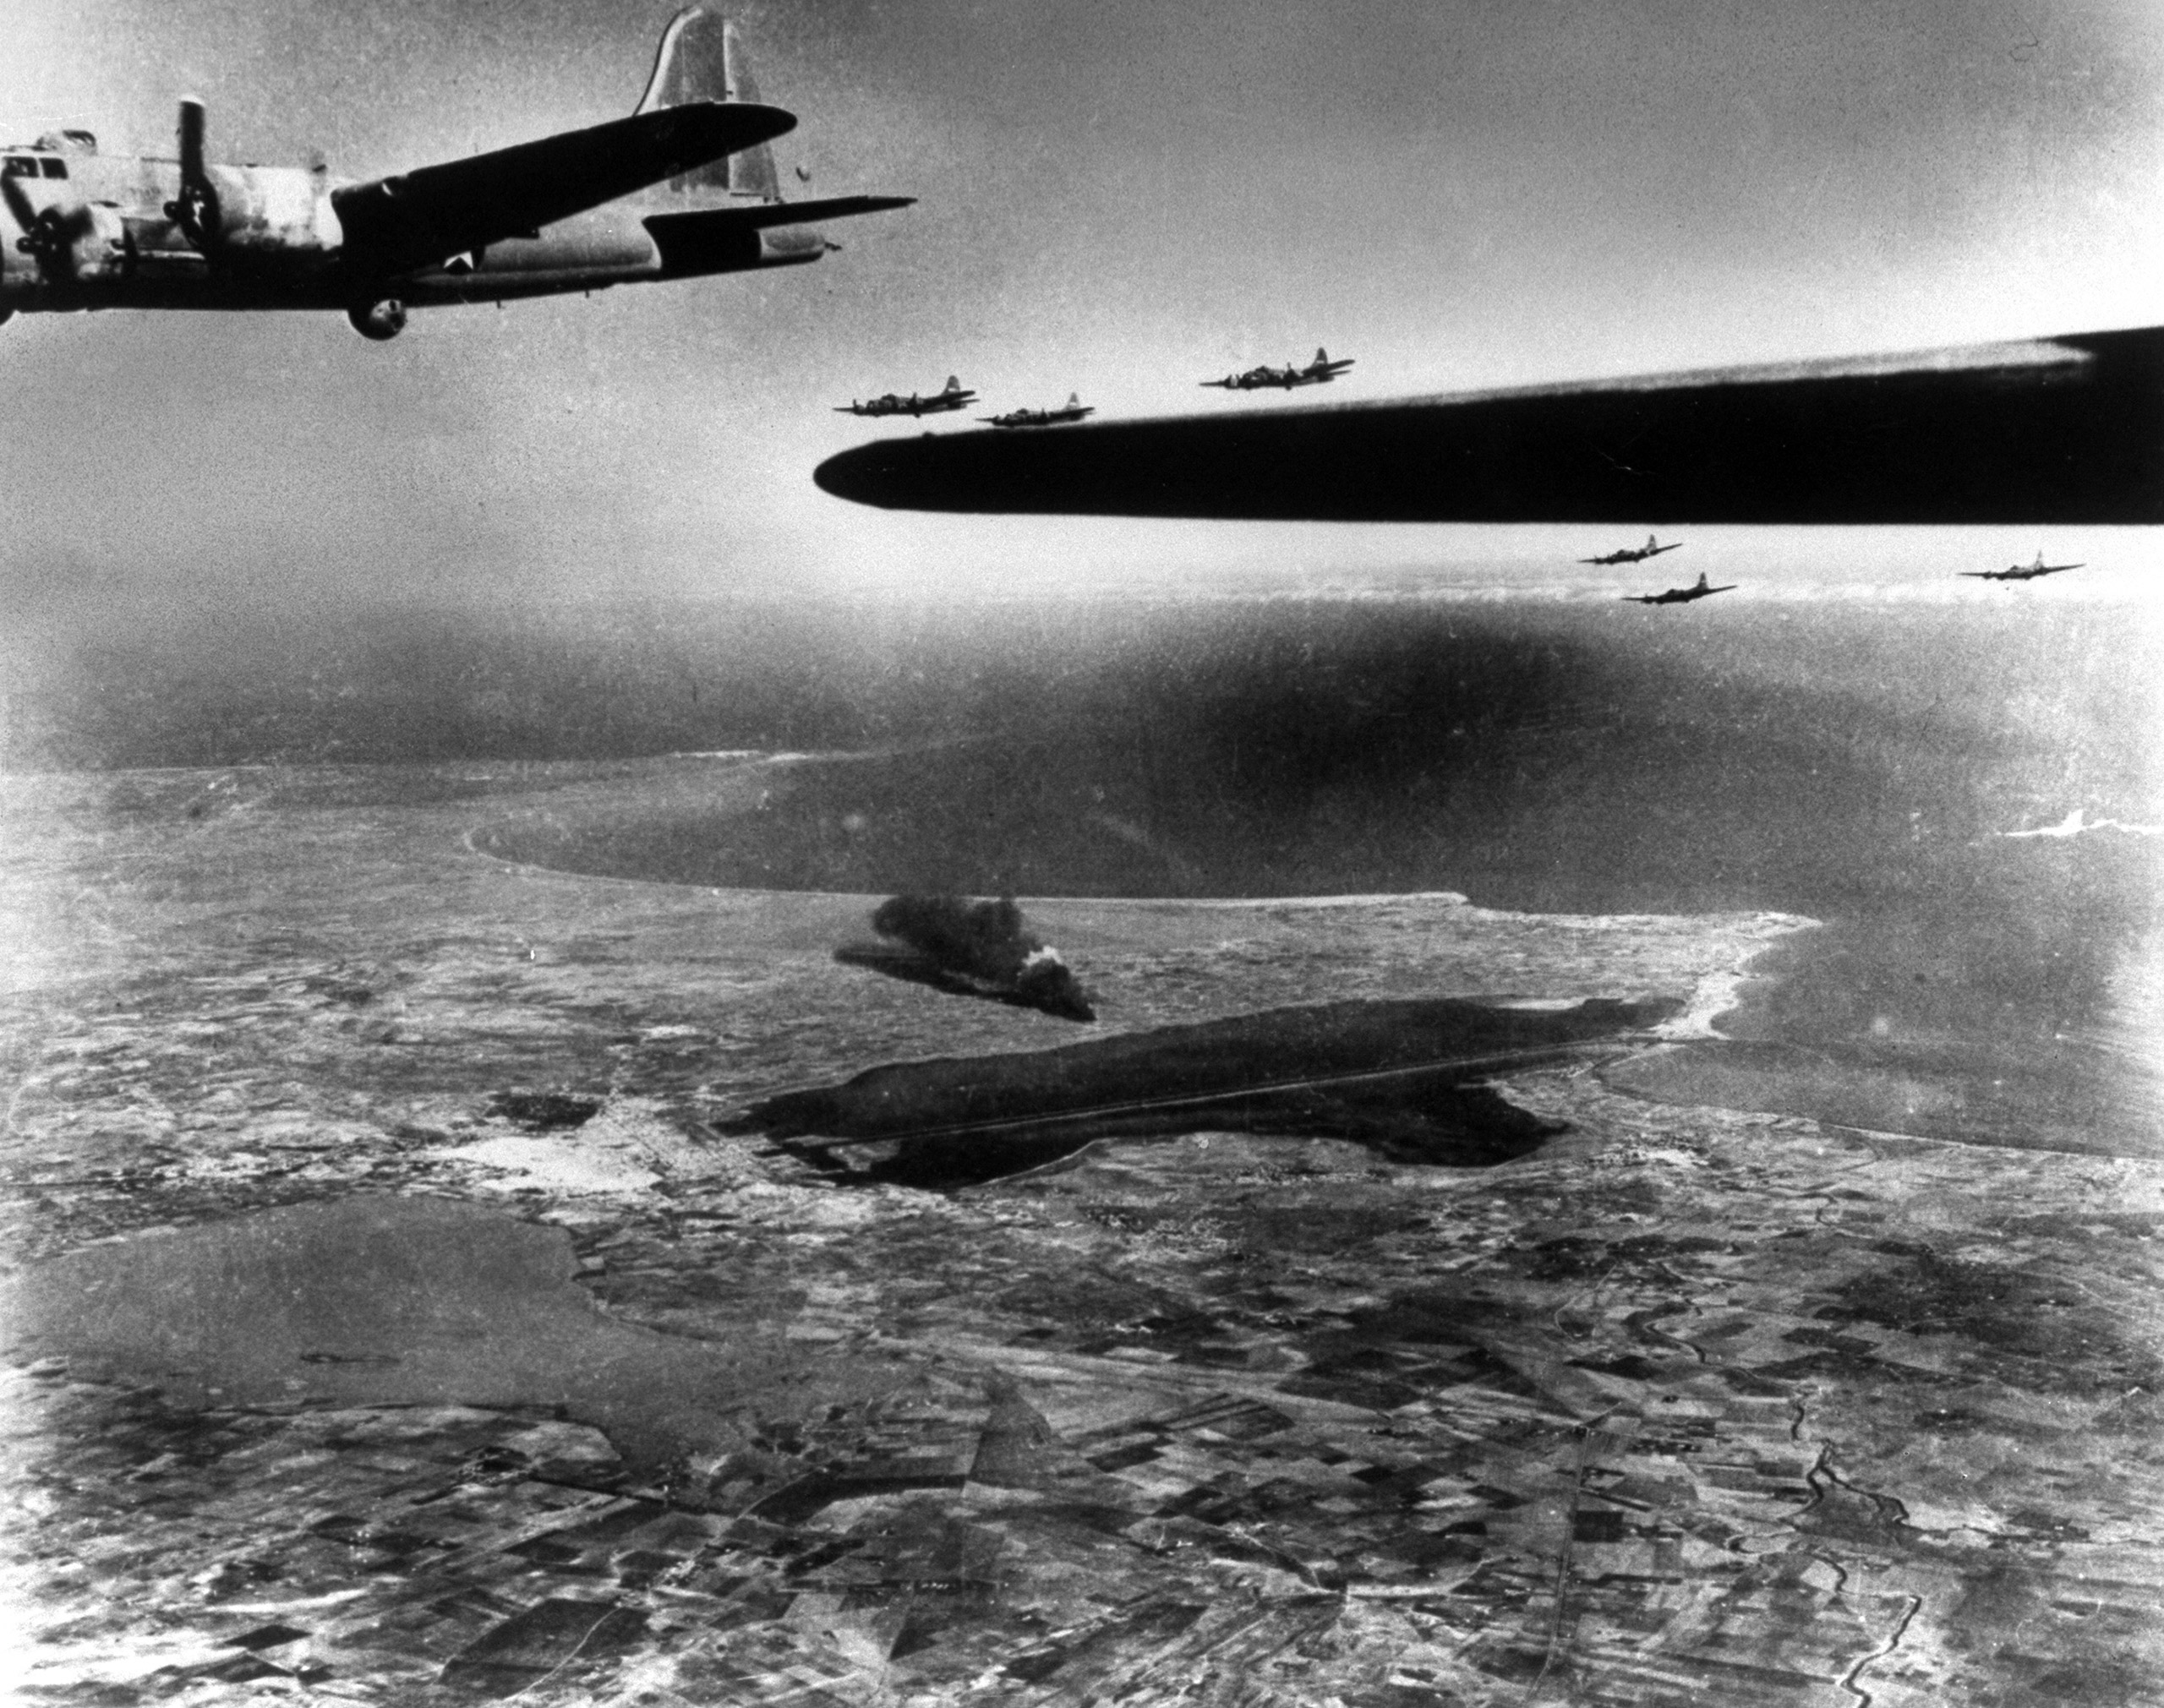 <b>Caption from LIFE.</b> Fortresses head for home leaving great smoke columns rising from bombed planes and fuel dumps on Tunis airport. In this picture you are looking Northeast across Tunisian coastal plain to Mediterranean. In upper left corner lies Bizerte.